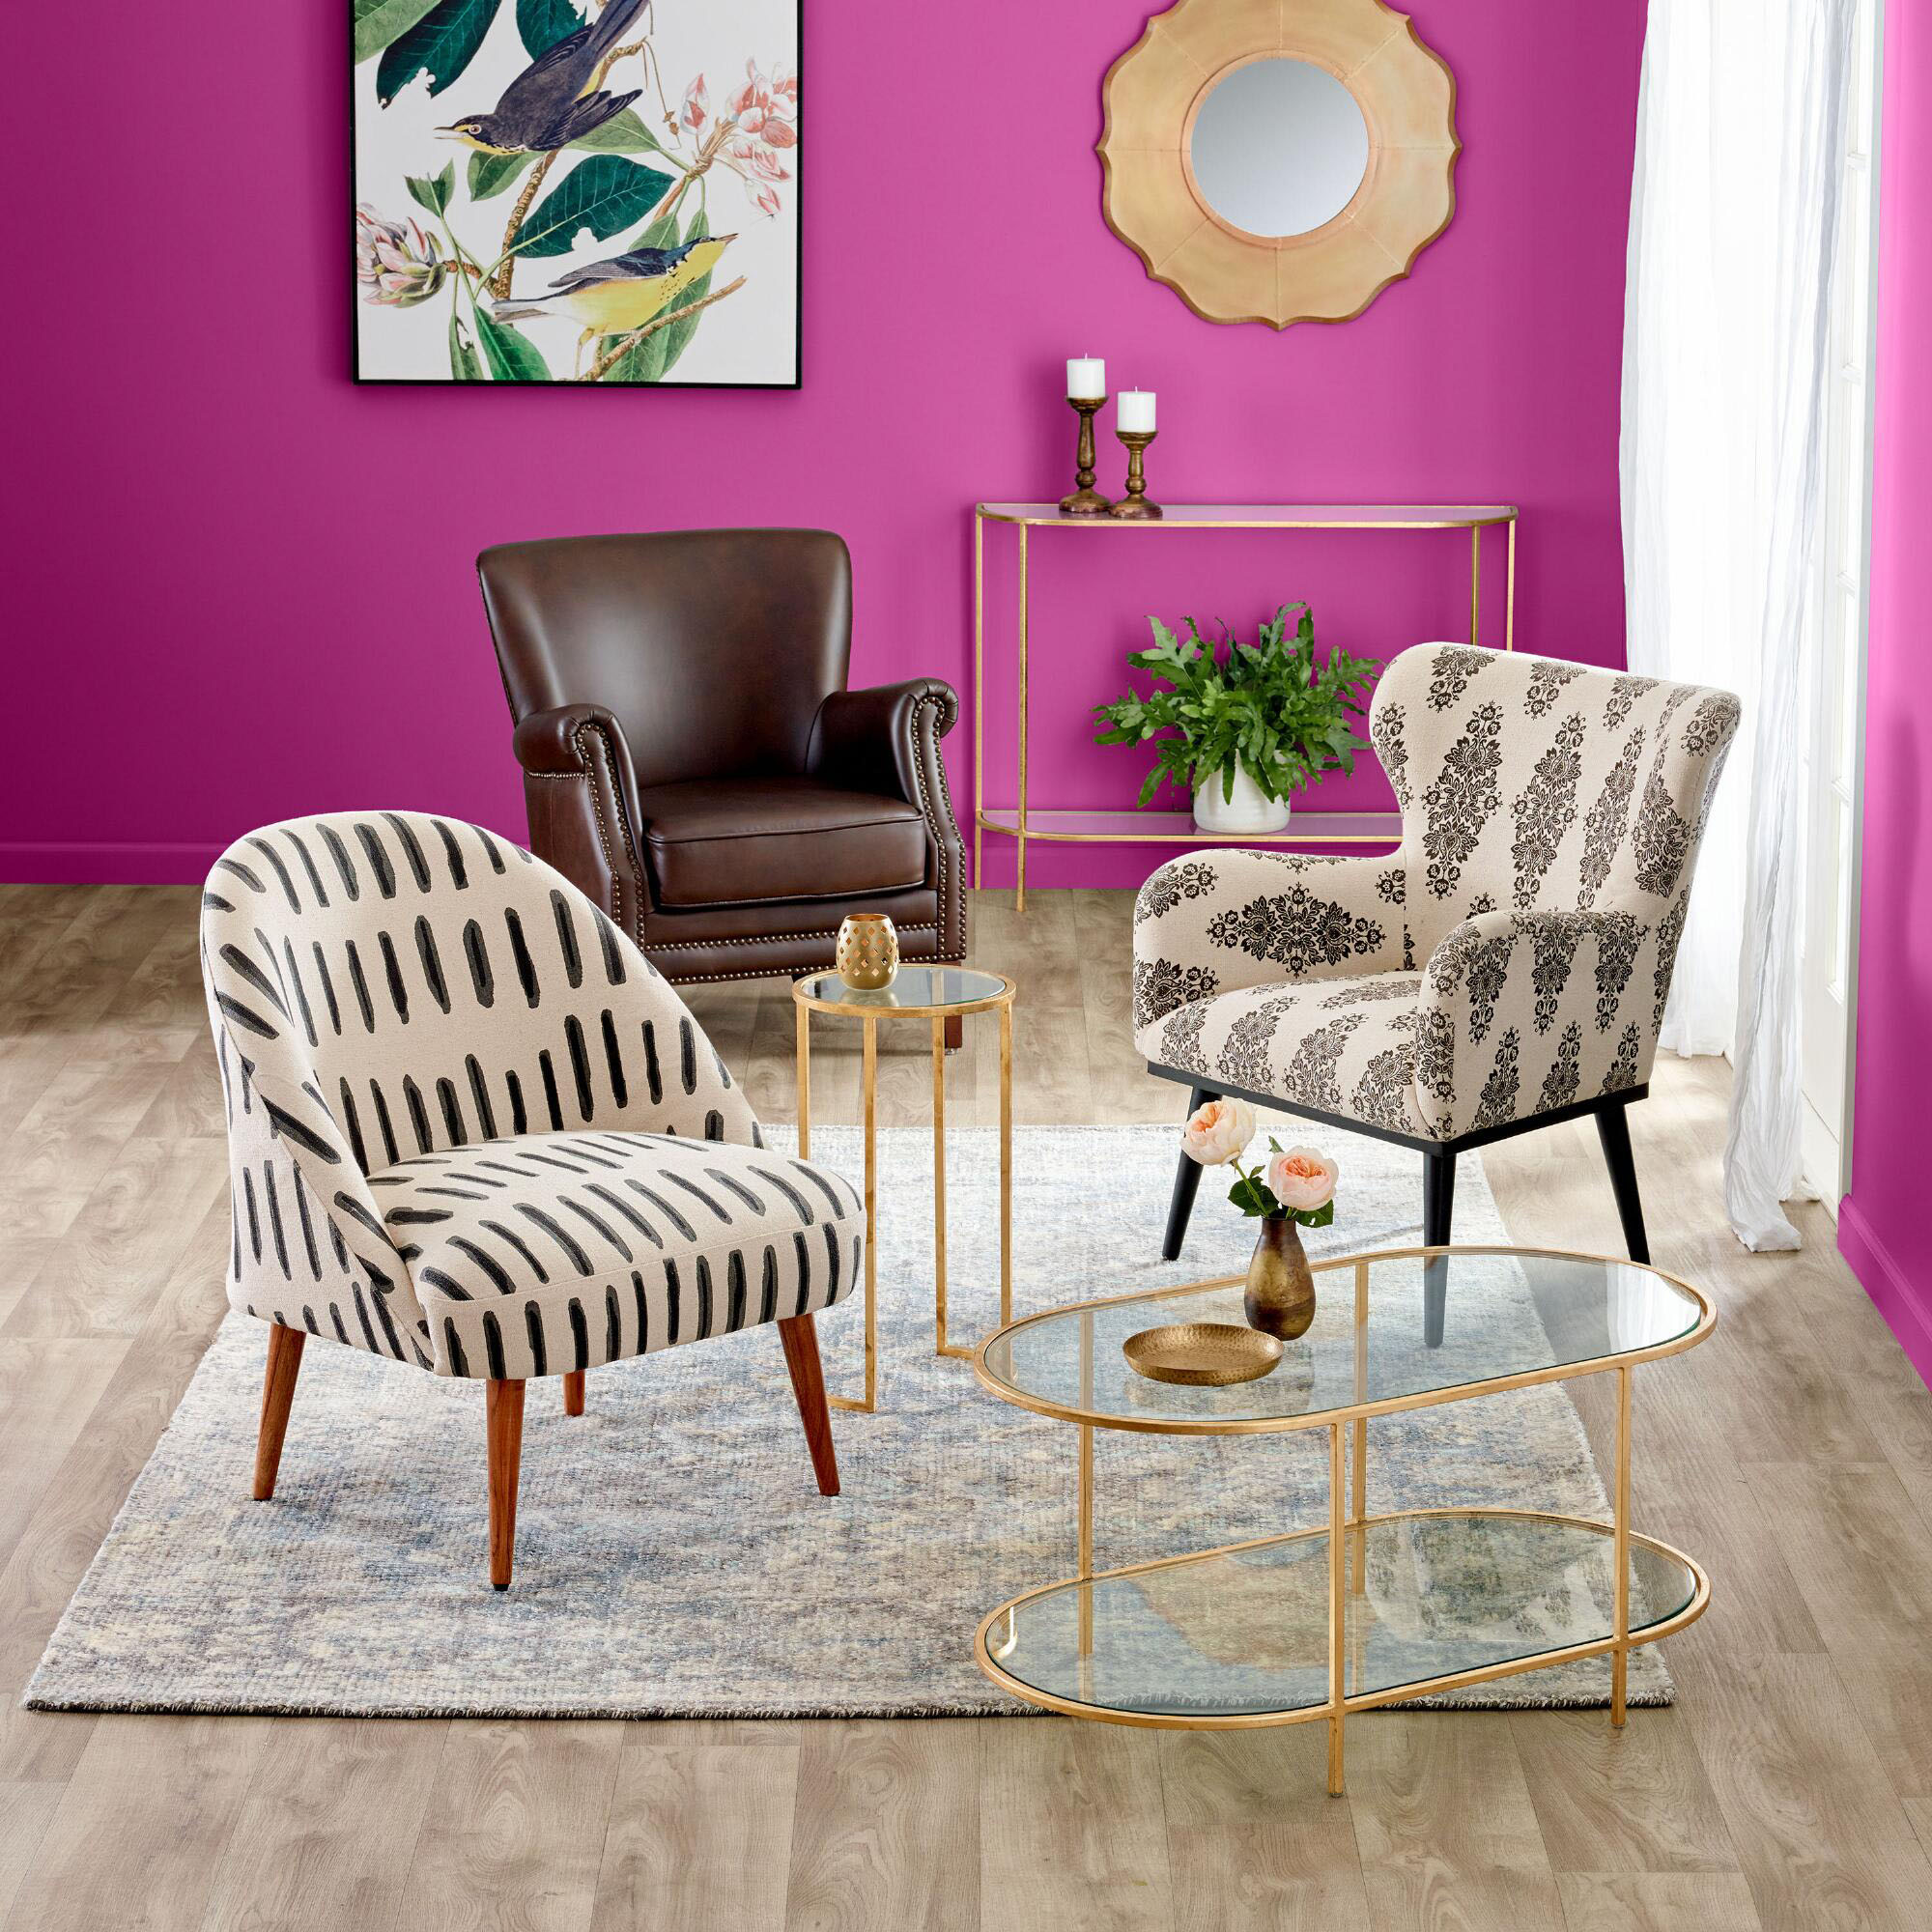 World Market Black Friday Accent Chair Deals